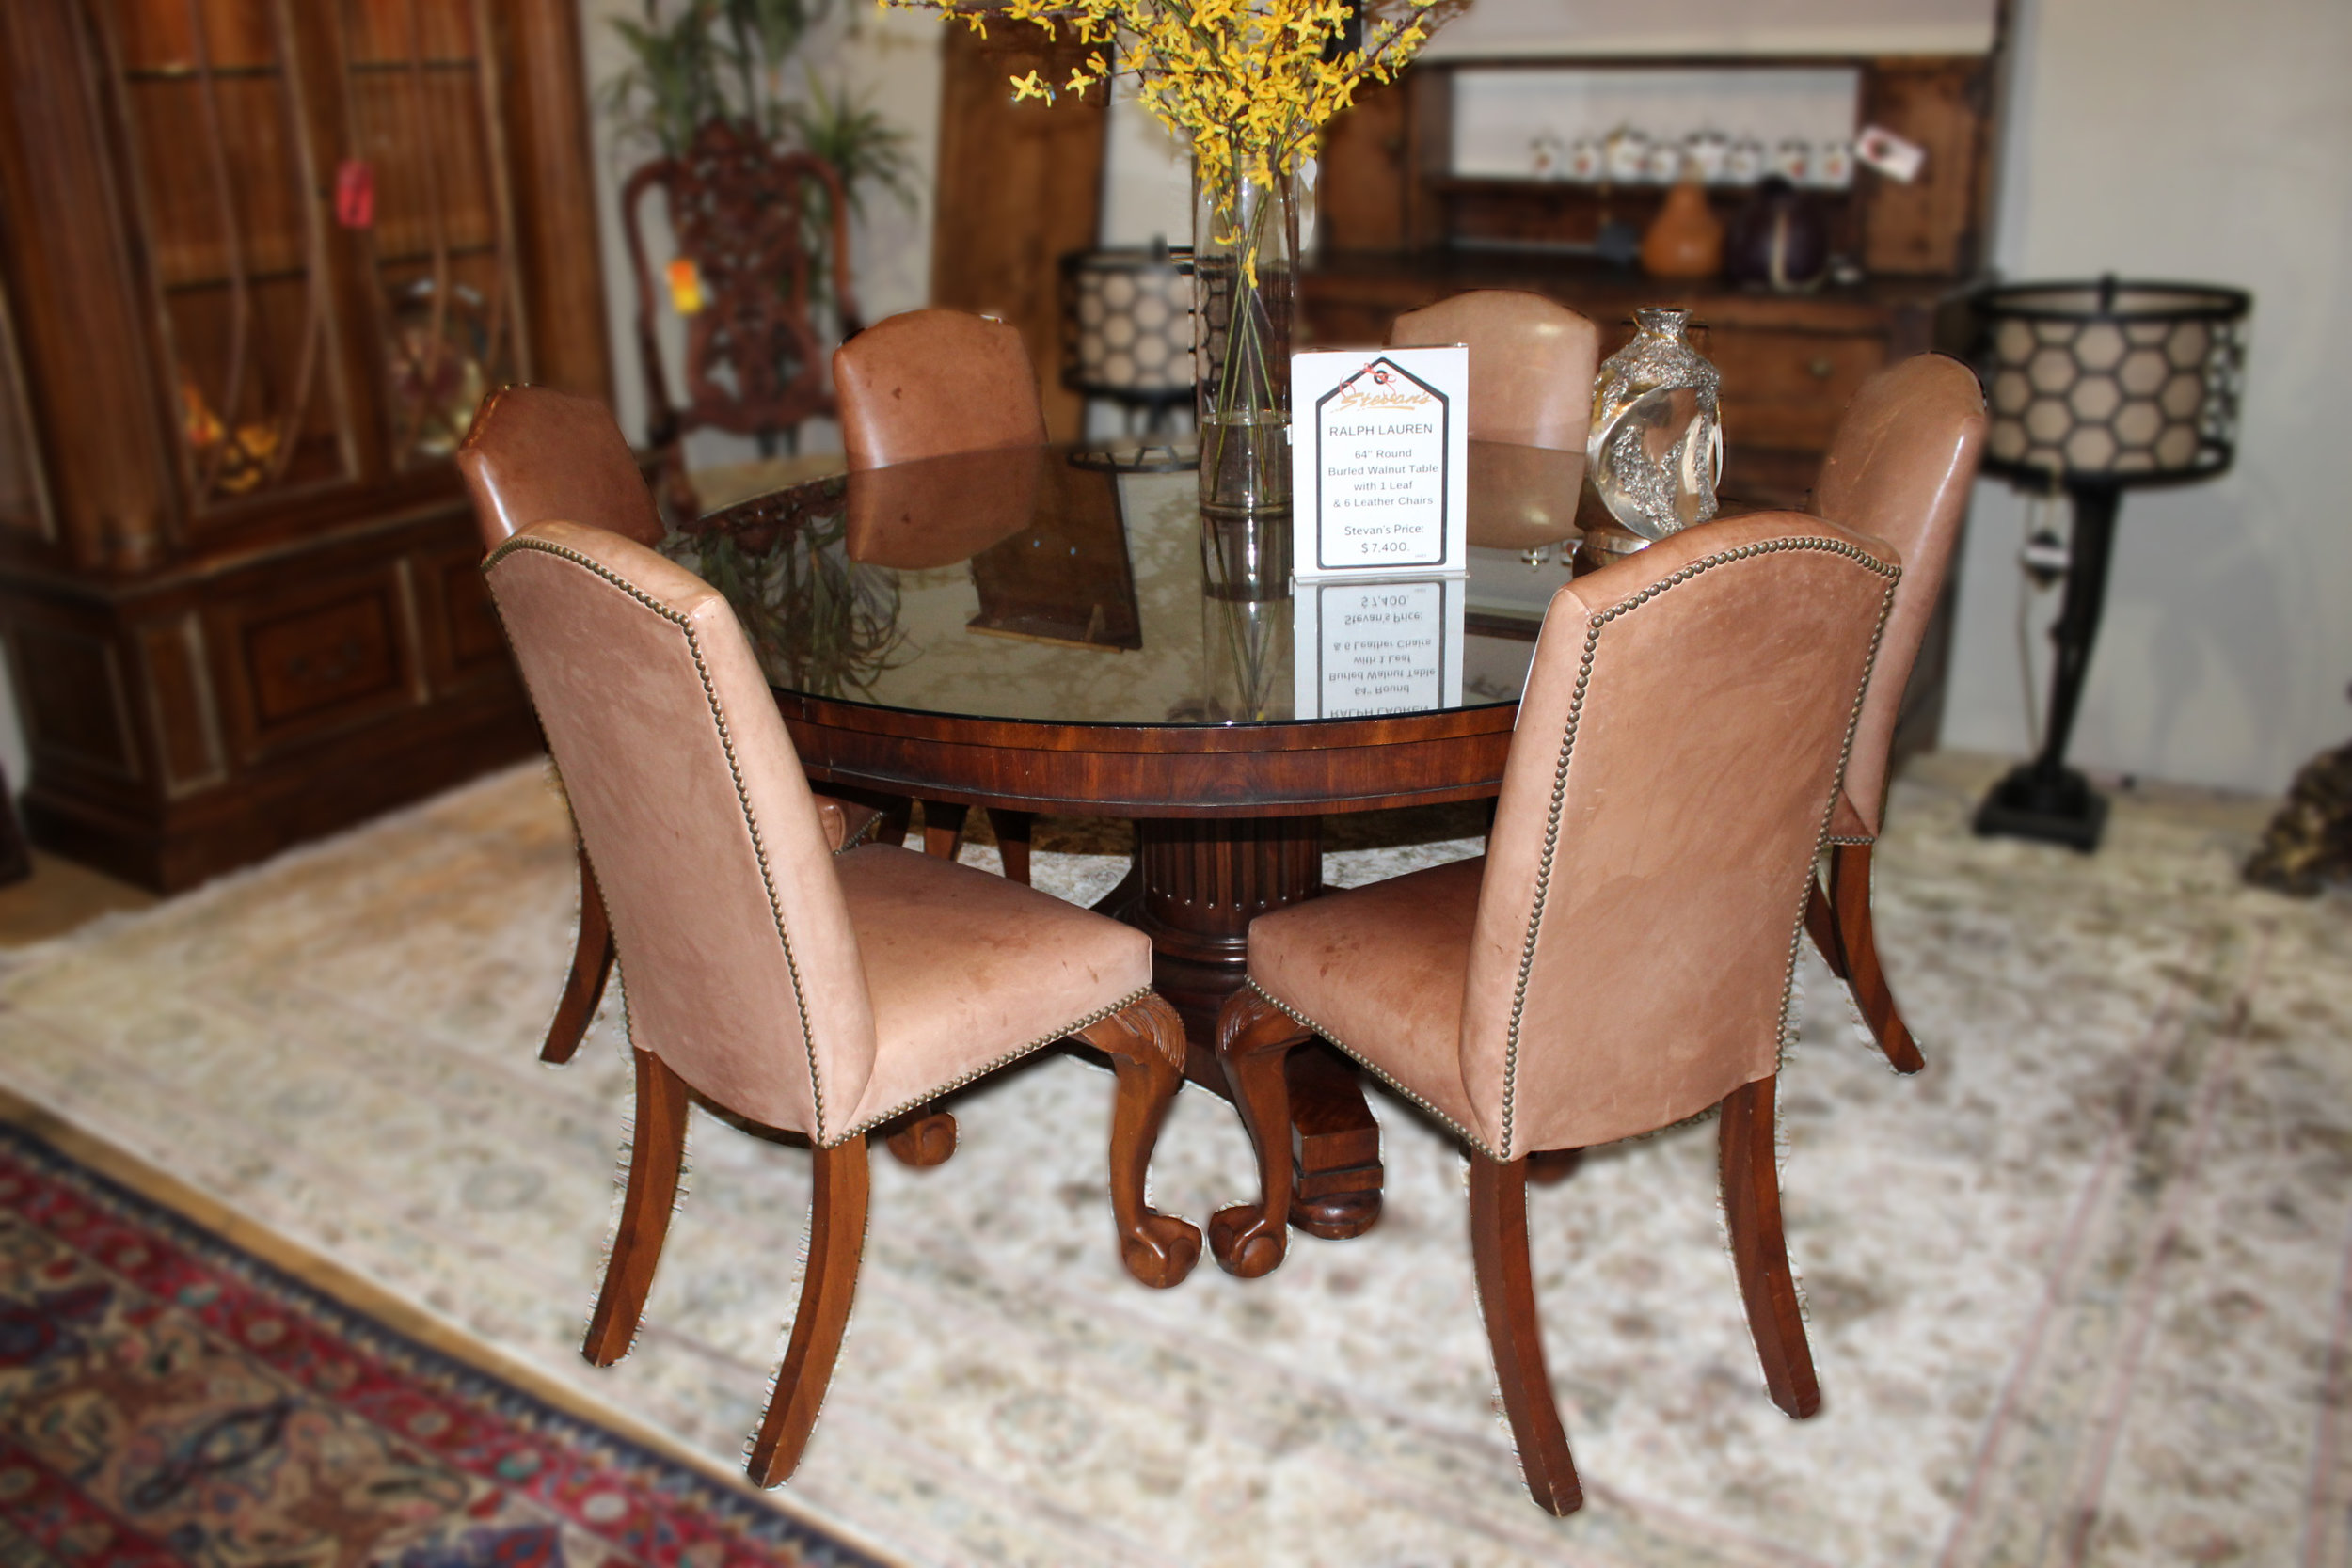 Ralph Lauren Round Burled Walnut Dining Table 1 Leaf & 6 Leather Chairs